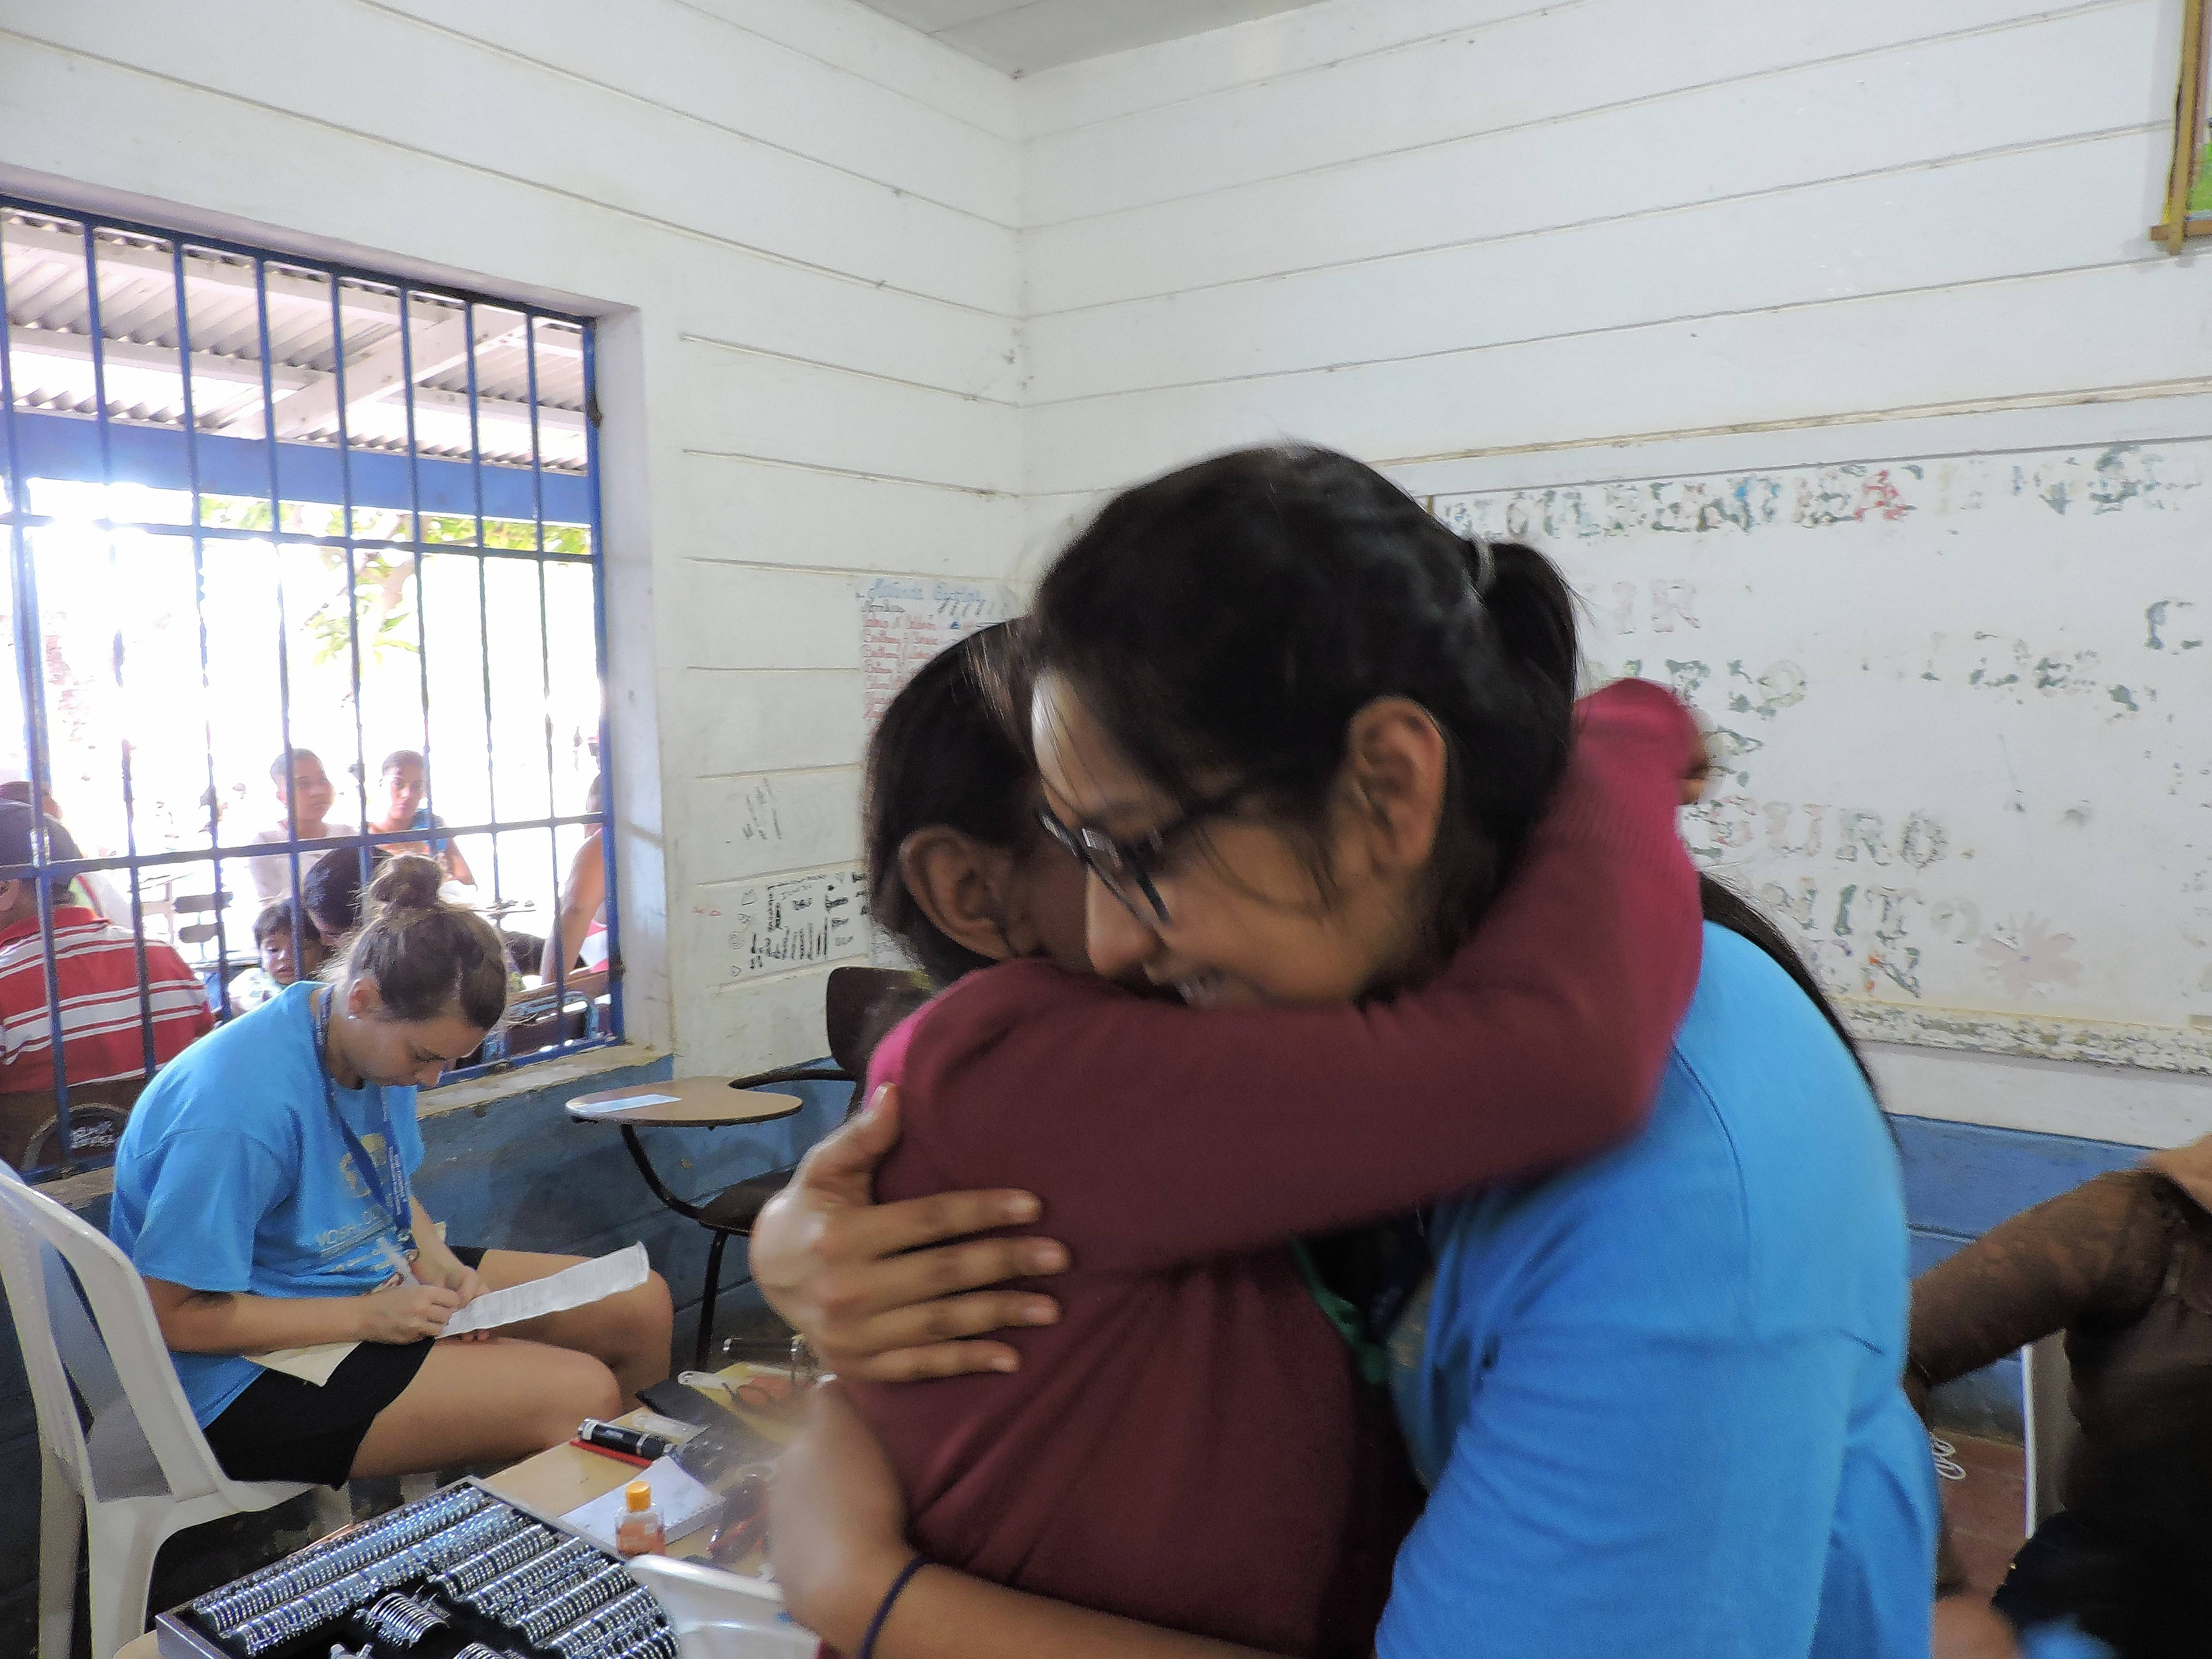 An elderly woman hugs one of the interns after receiving glasses that helped restore her vision at eye clinics set up inside the school in San Juan Del Sur, Nicaragua.